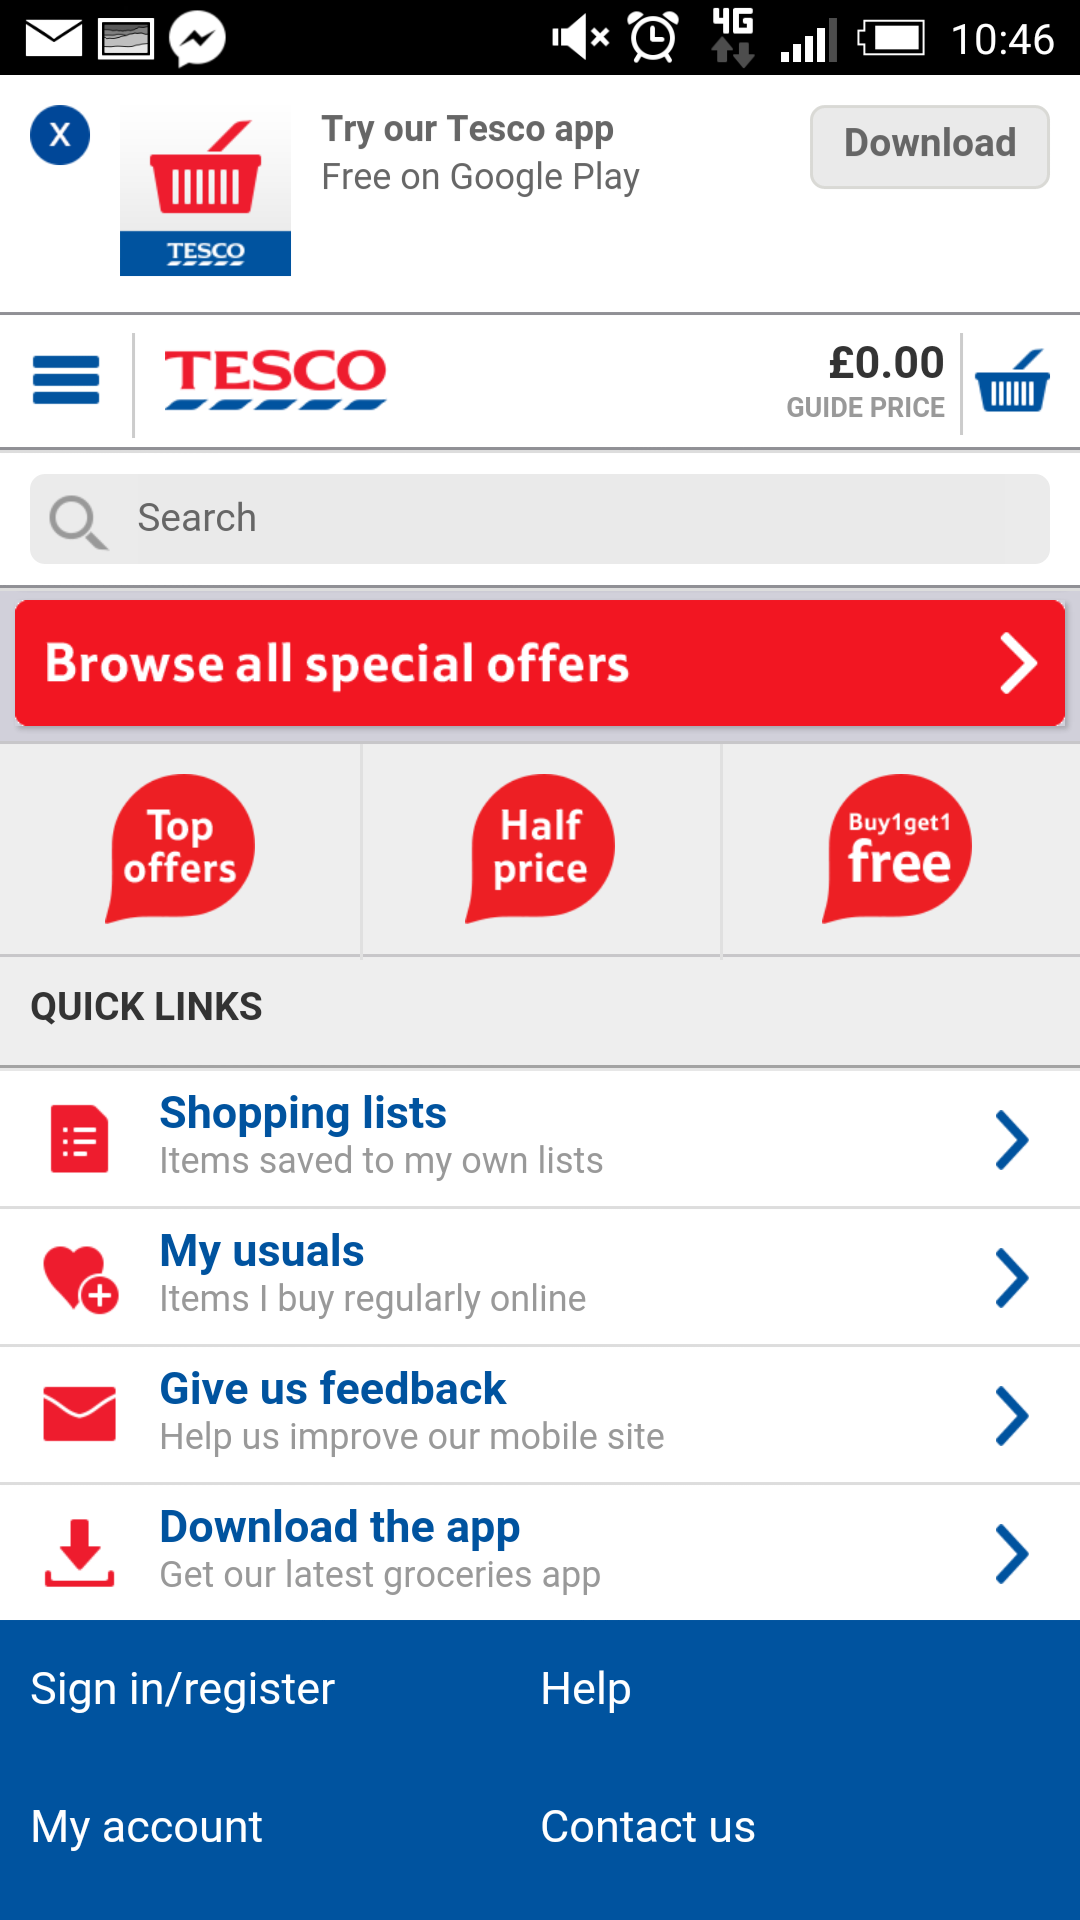 Tesco mobile site